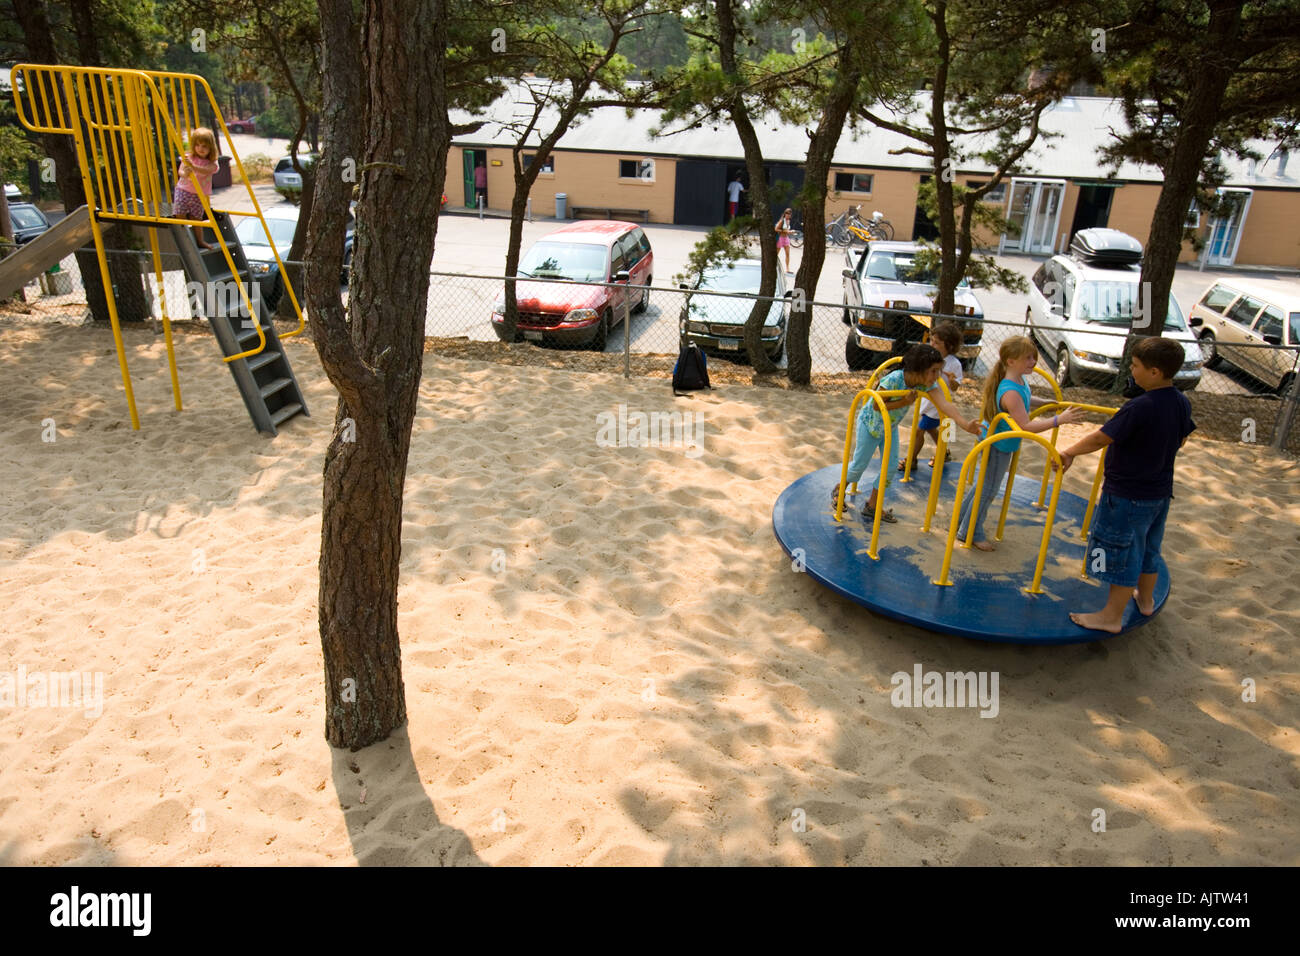 Kids Play At The Playground At The North Of Highland